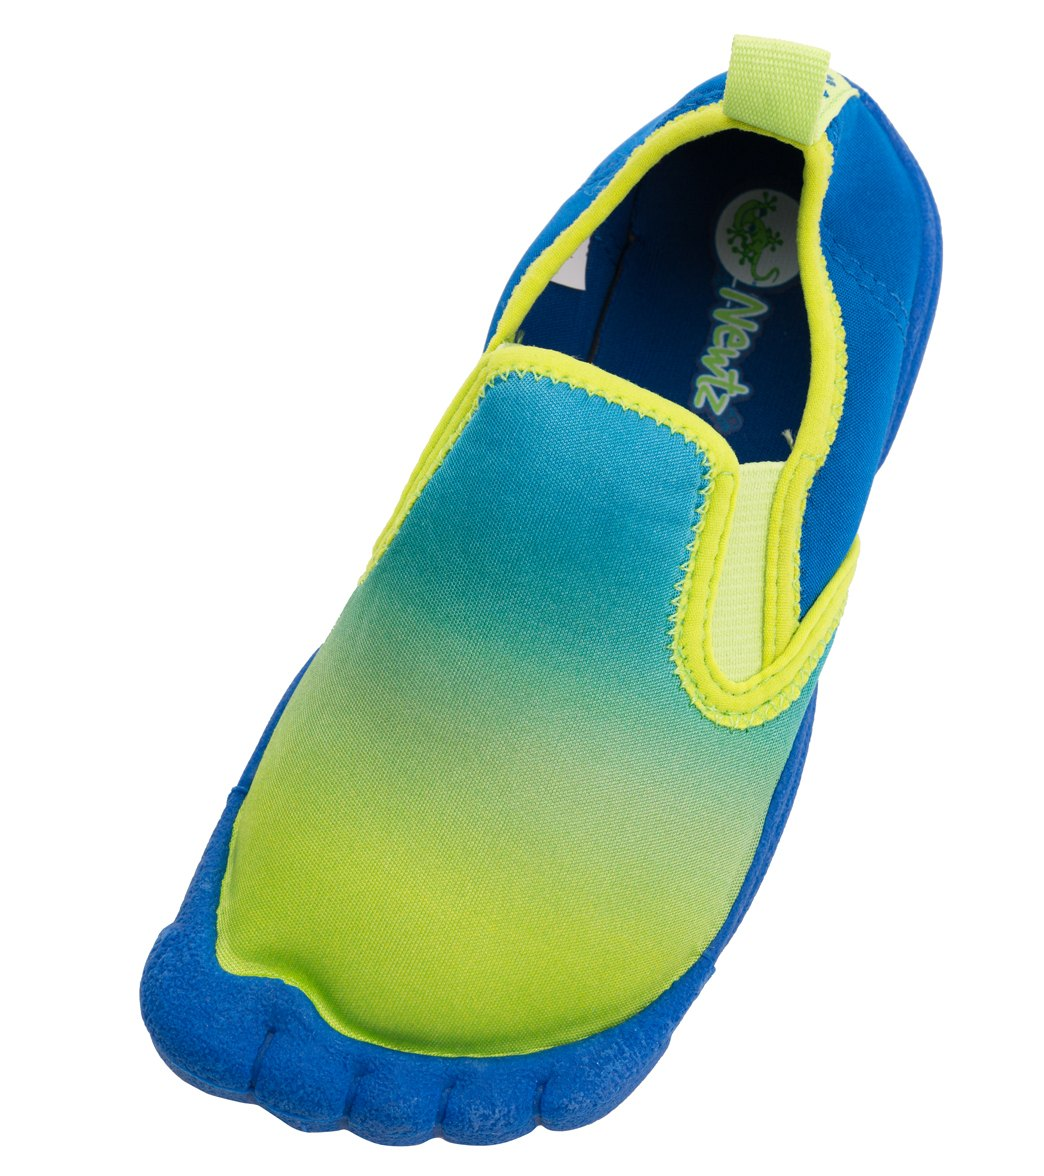 Newtz Boys' Twin Gore Transition Water Shoes at SwimOutlet.com